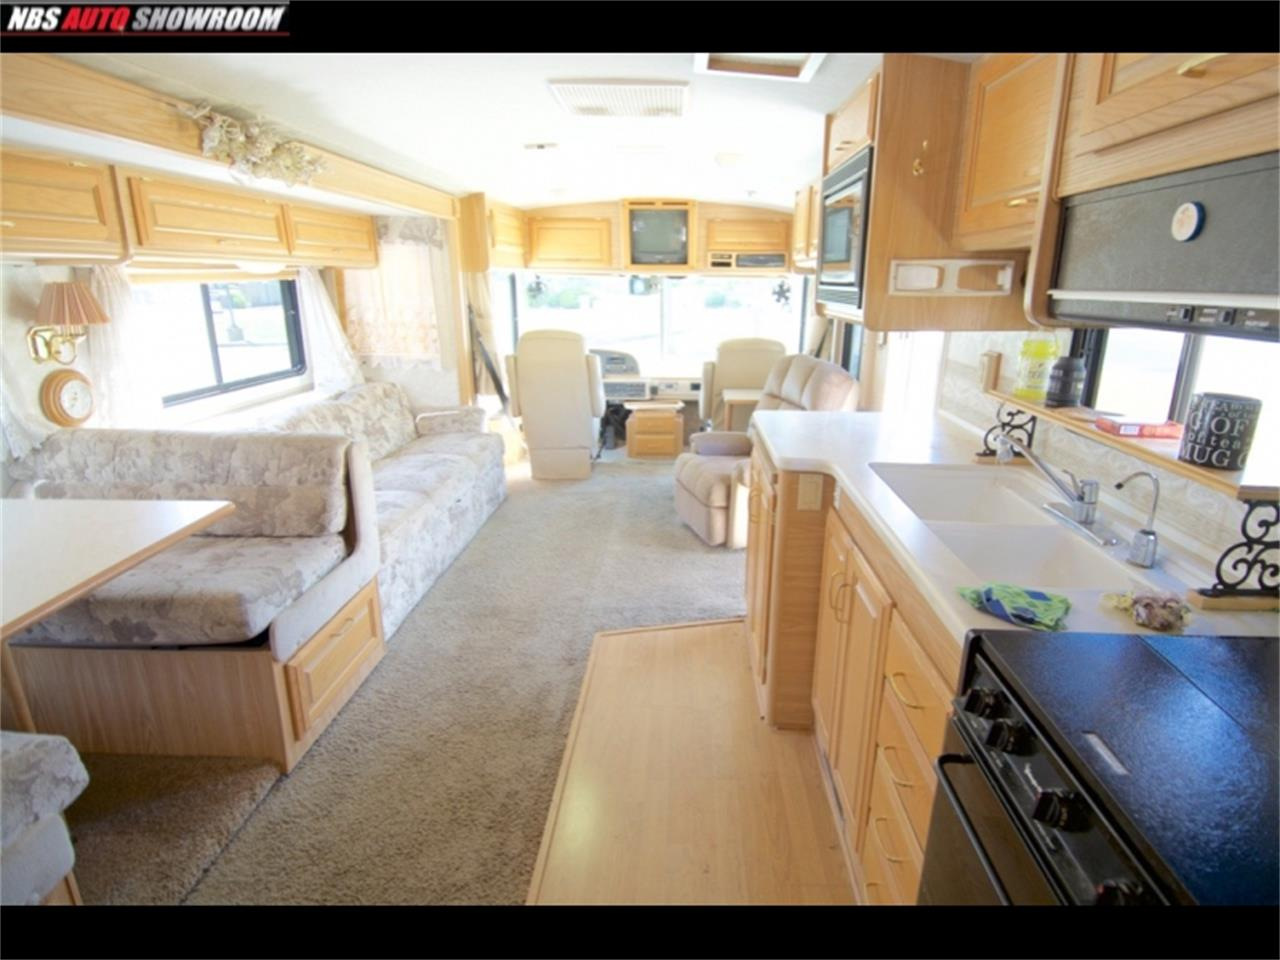 2000 Fleetwood Bounder (CC-1267666) for sale in Milpitas, California